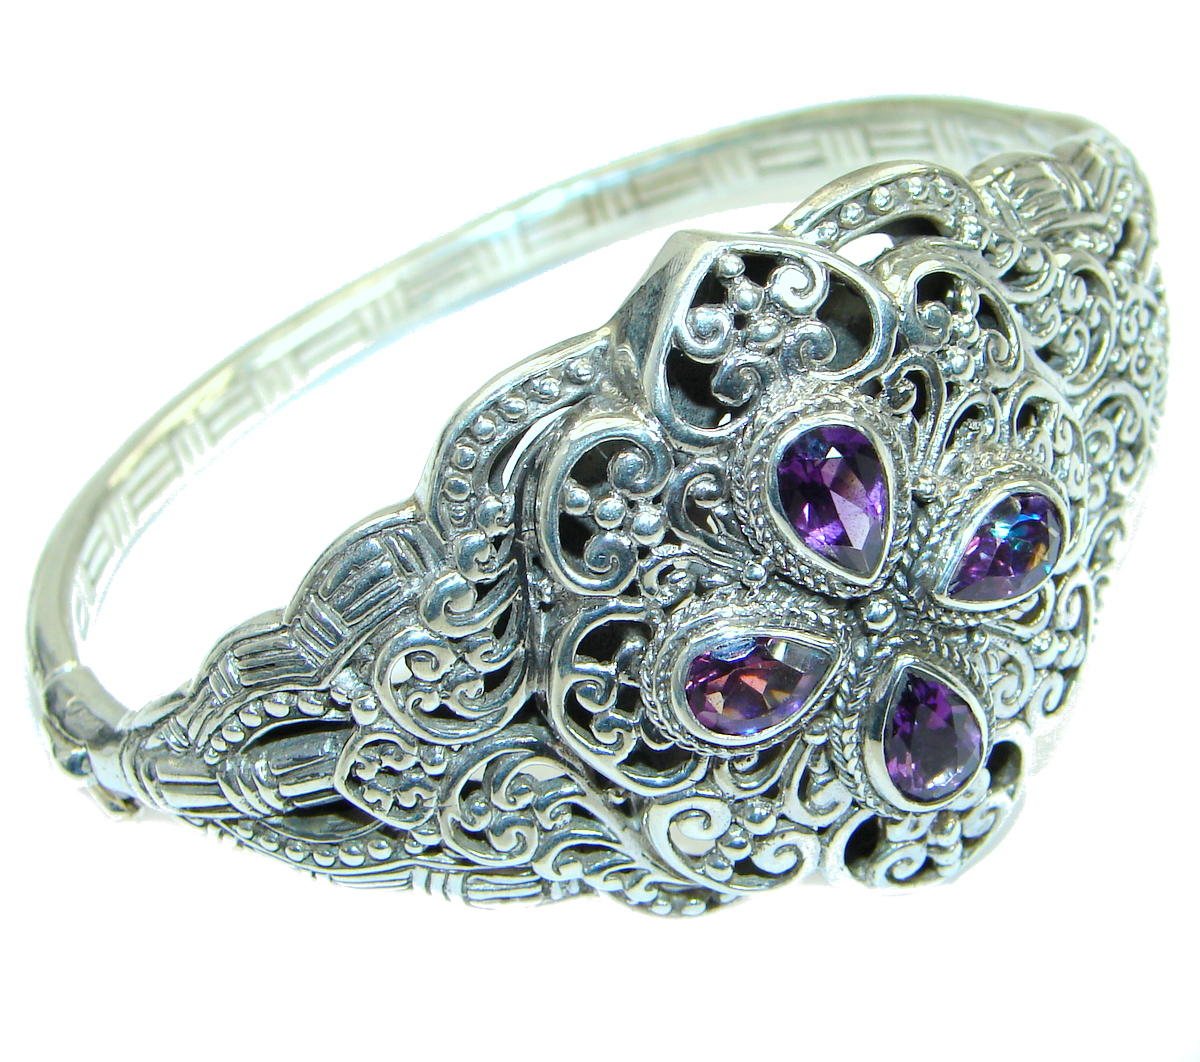 Bali Made  genuine Amethyst  .925 Sterling Silver handcrafted Bracelet / Cuff